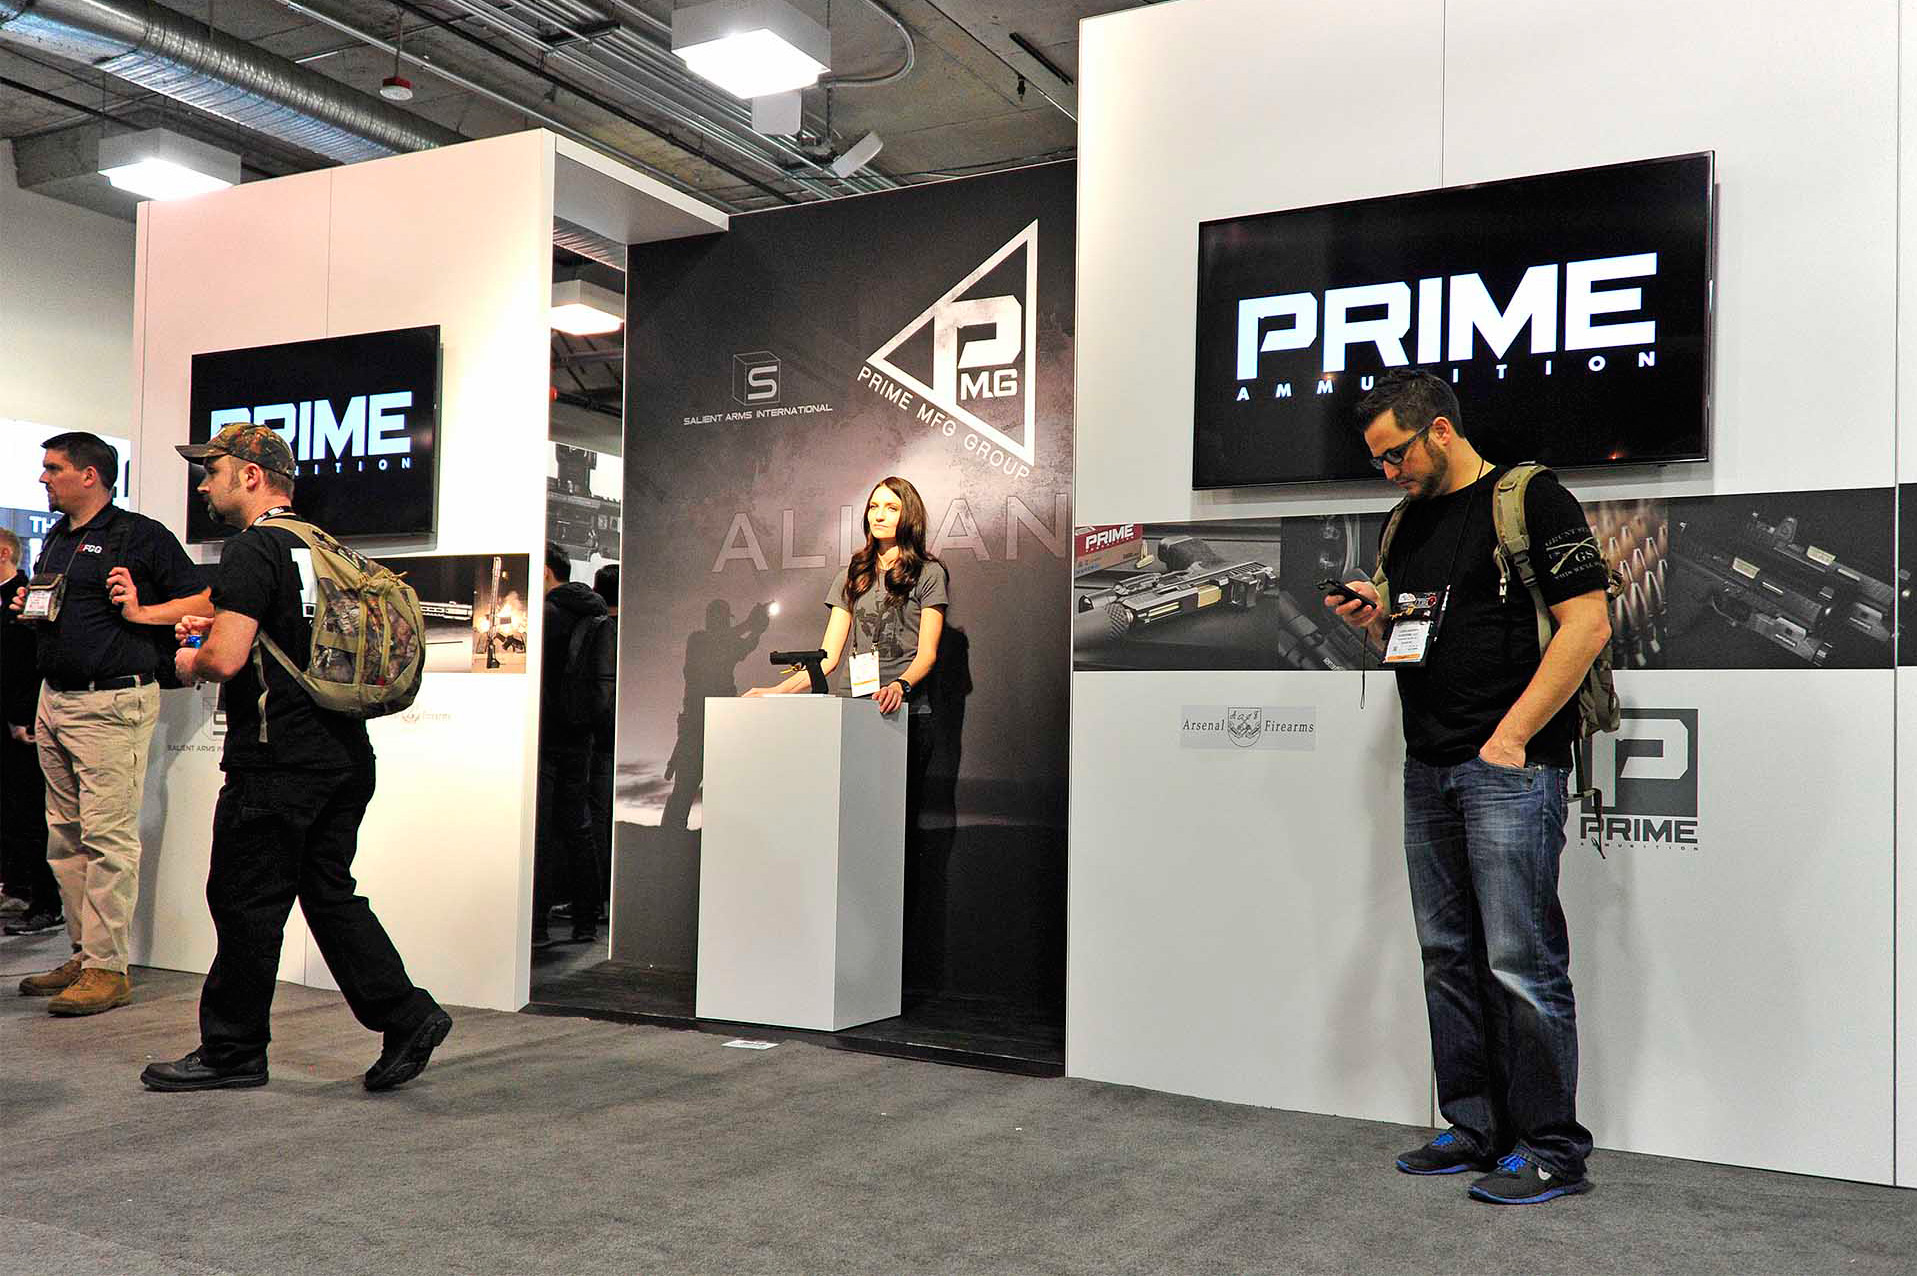 PMG-Prime-Arms-booth-1.jpg